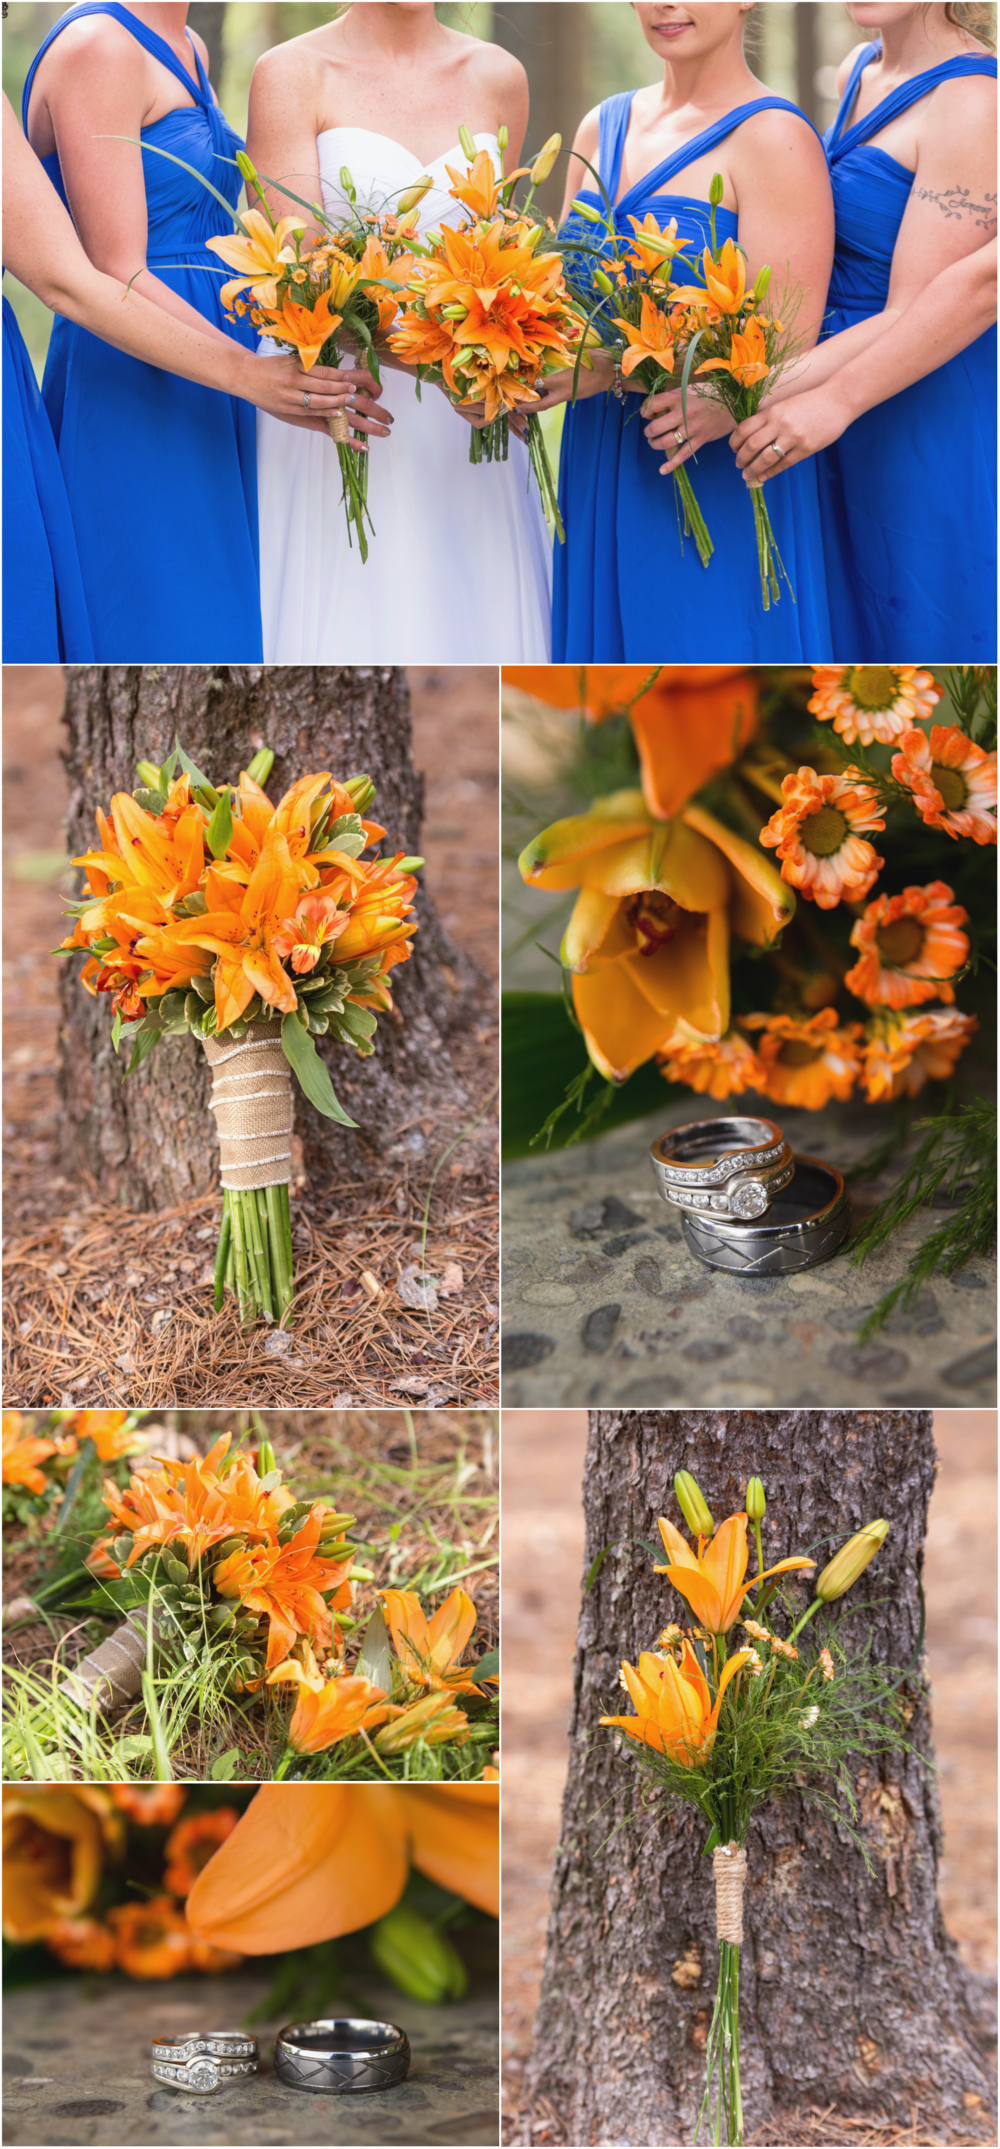 elkwater_wedding_peninsula_11c.png